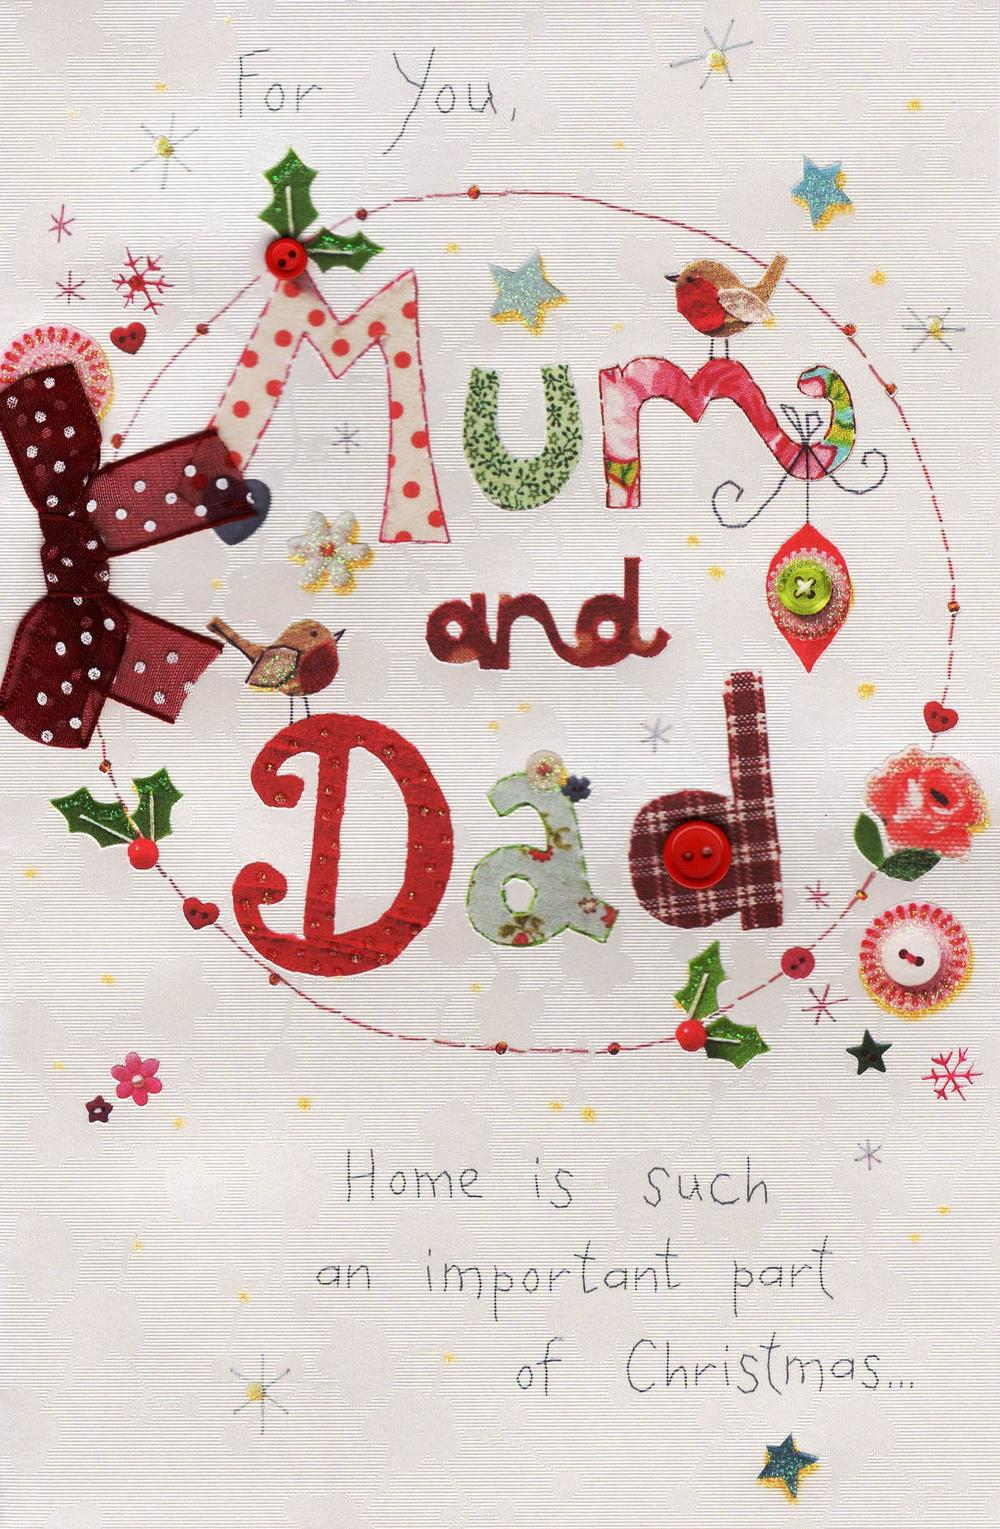 For You Mum & Dad Christmas Greeting Card